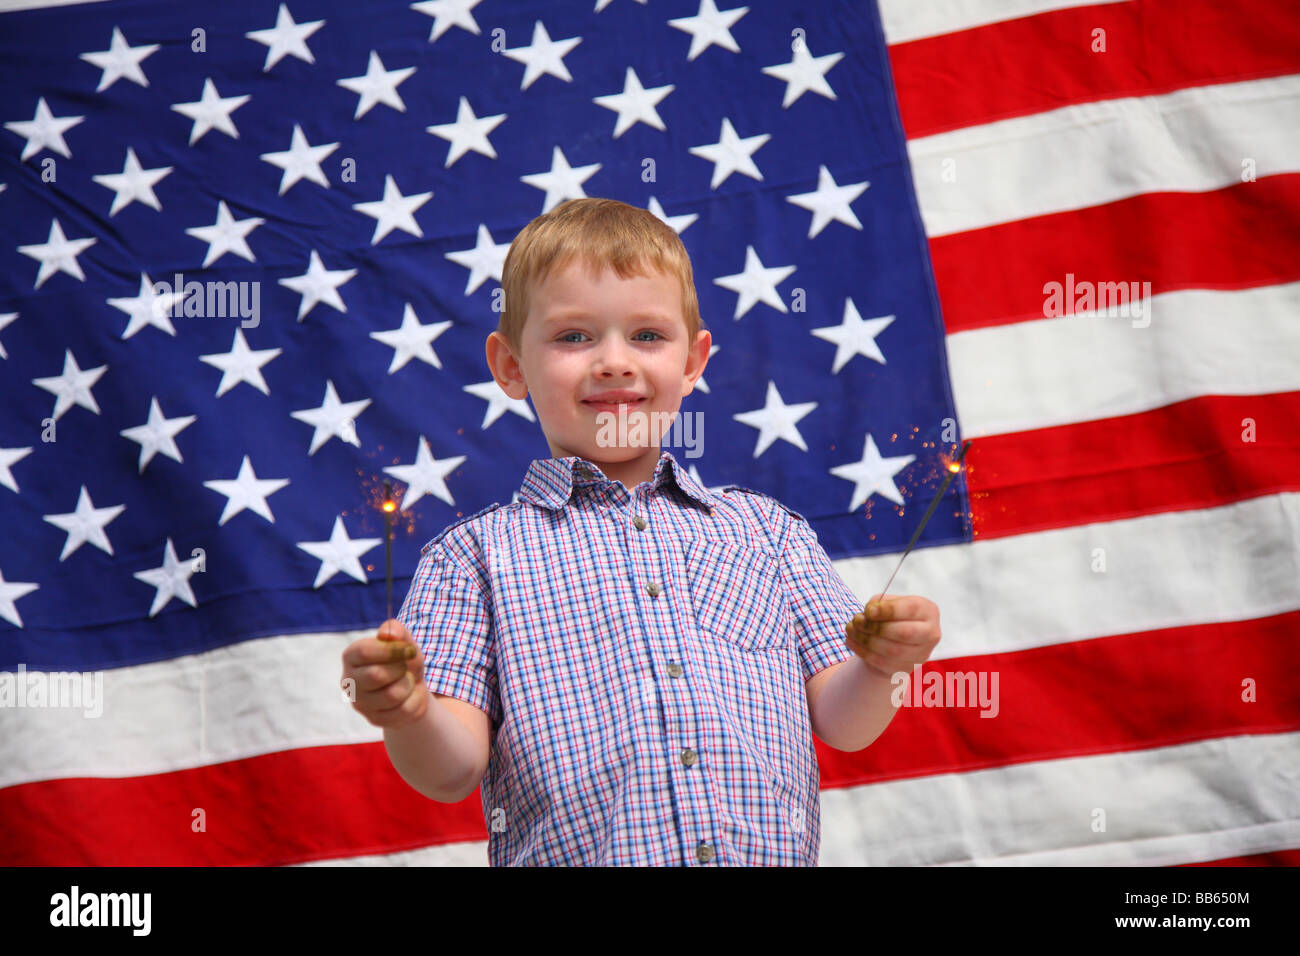 Young boy waving sparklers in front of American flag Stock Photo